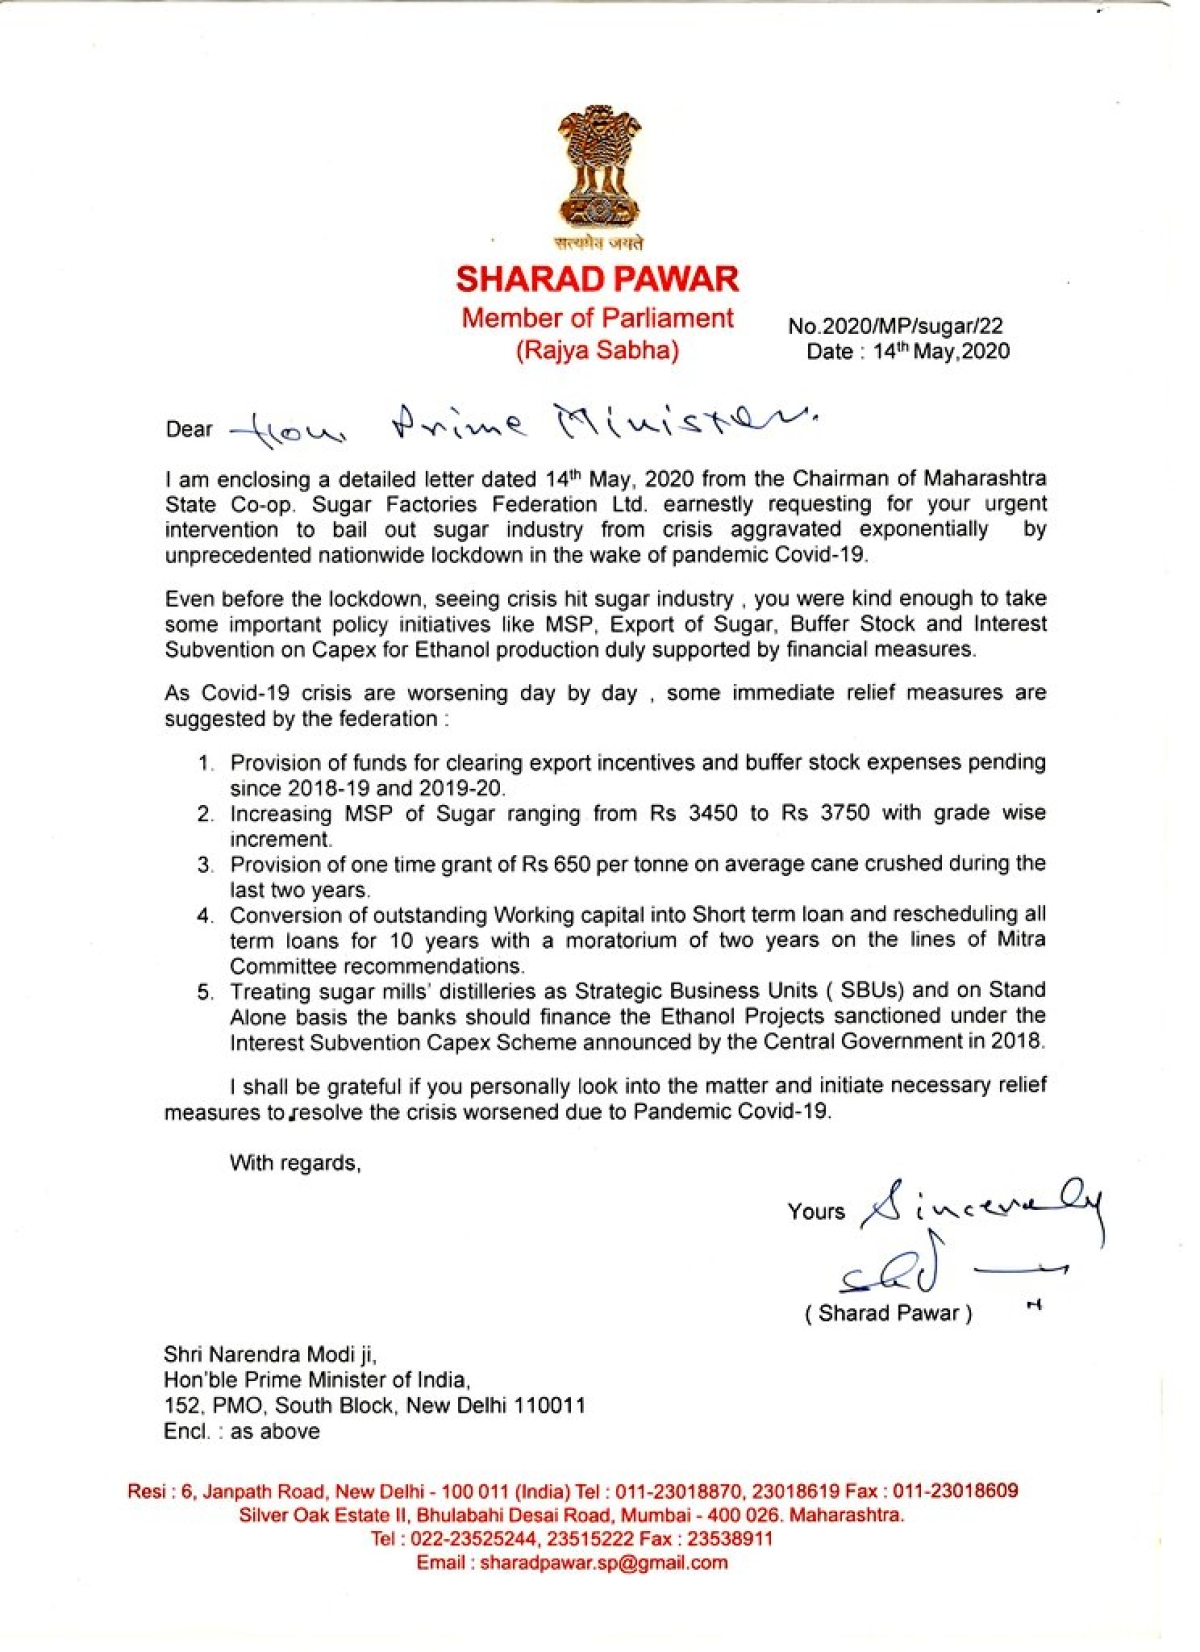 Sharad Pawar writes to PM Modi; requests to take measures for crisis-hit sugar industry